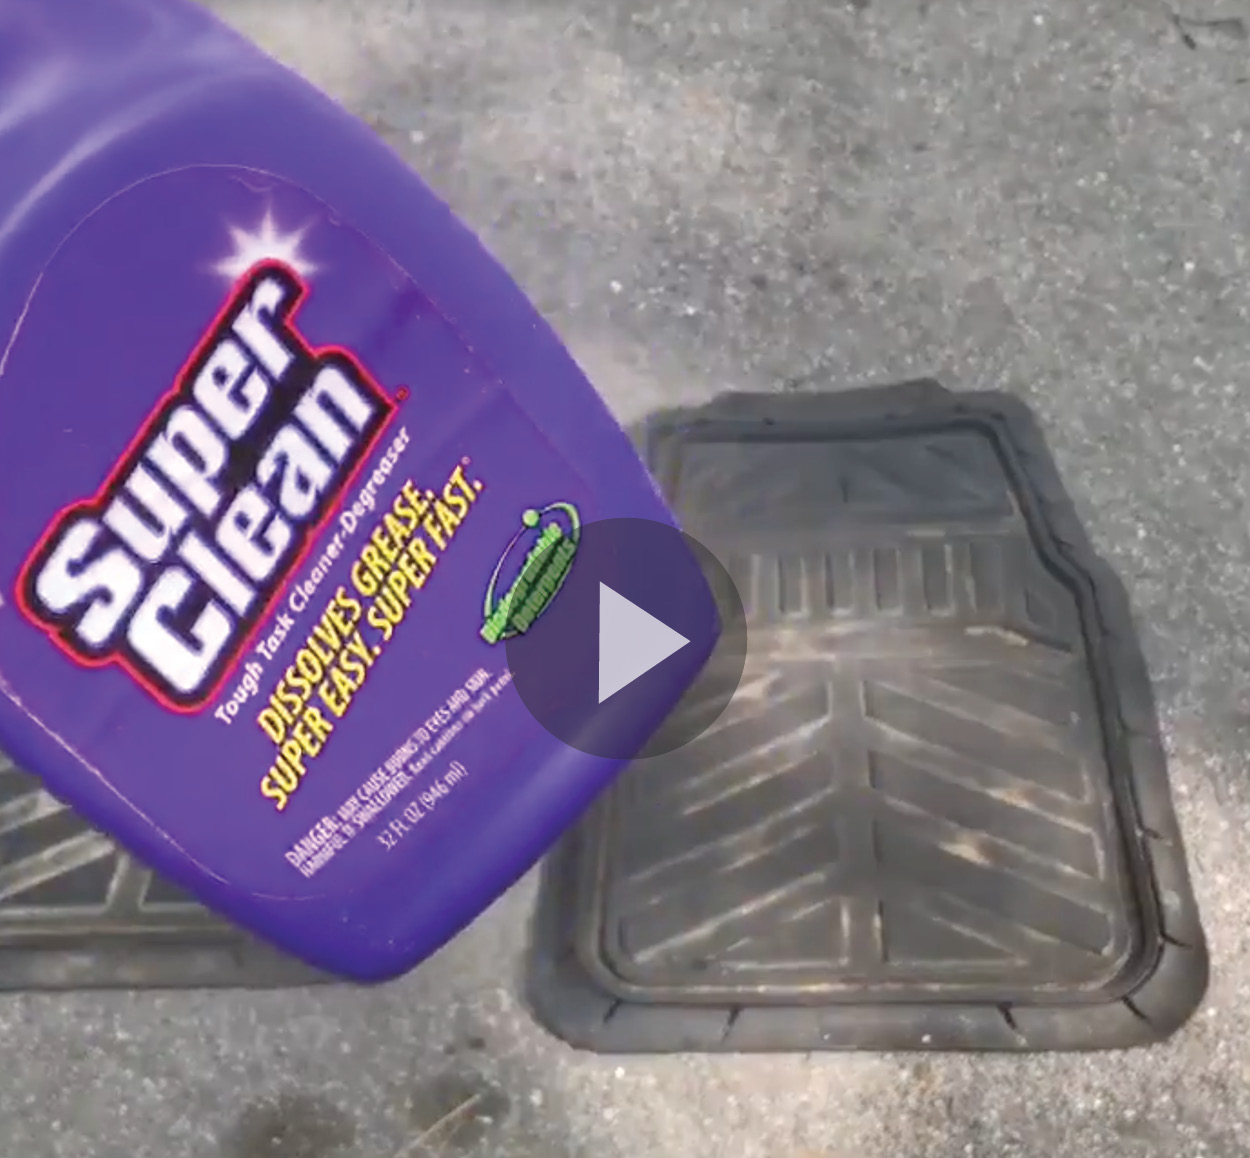 Rubber Floor Mat on ground with bottle of Super Clean